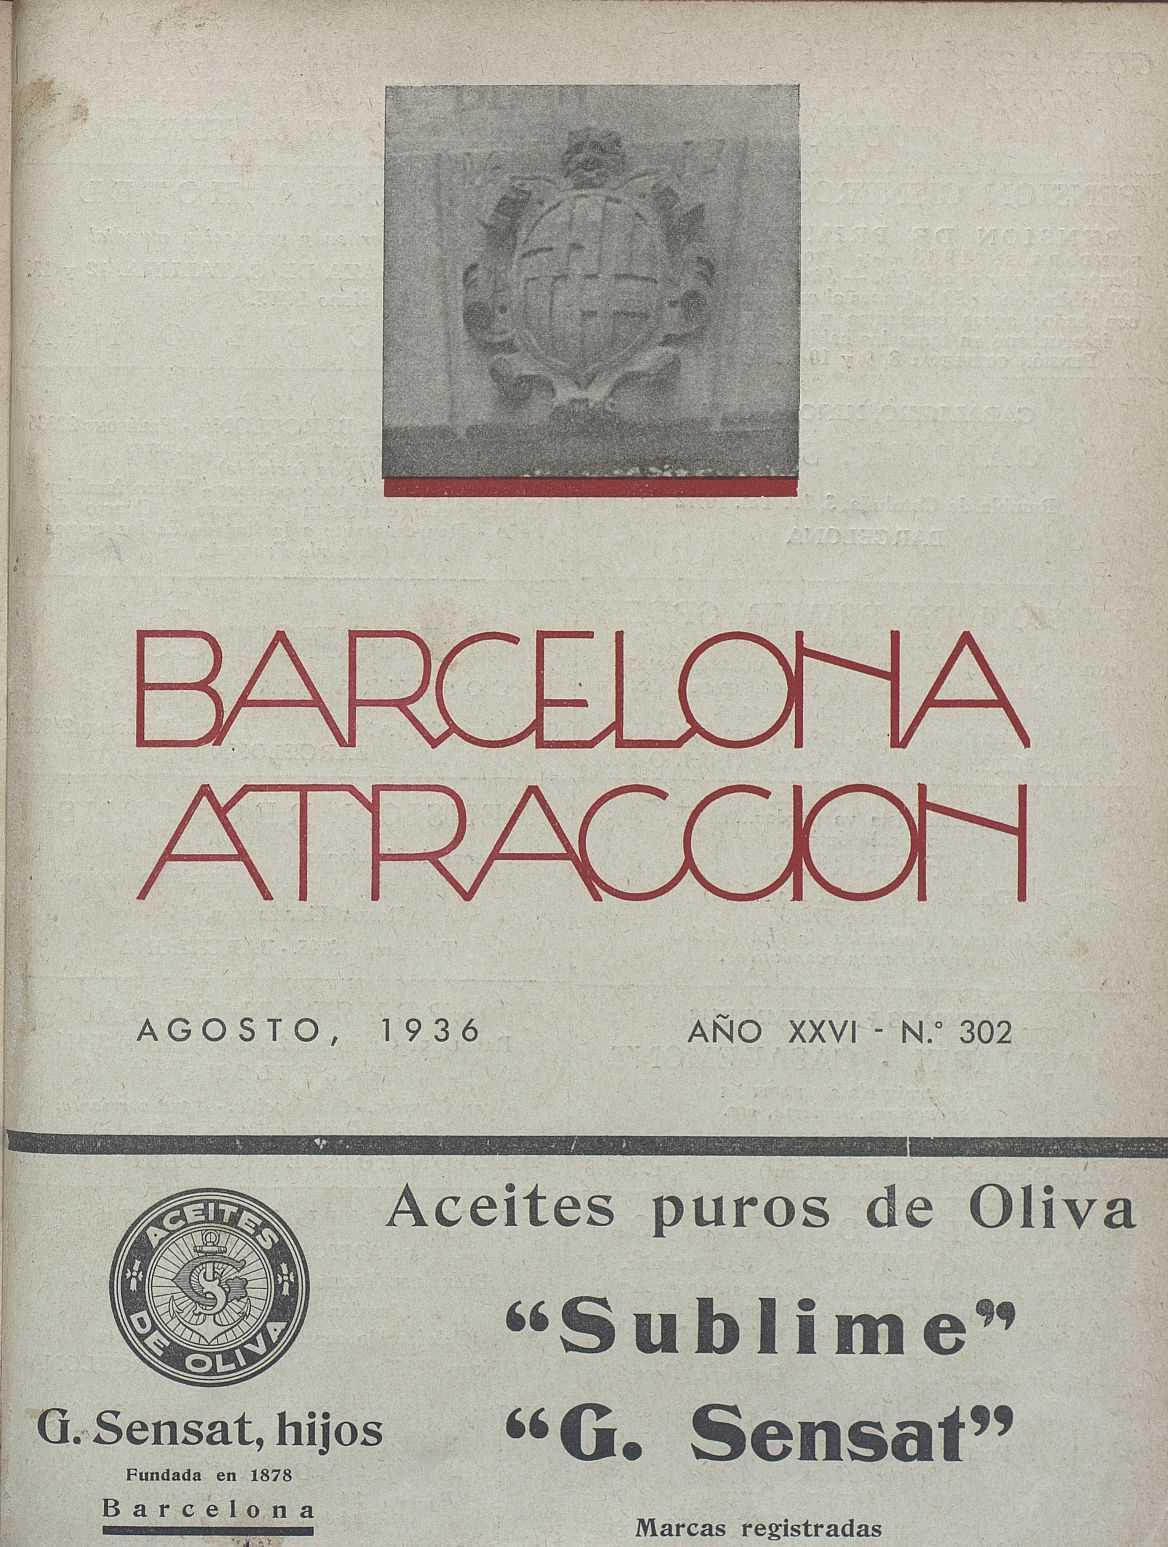 AHCB, Periodicals Library, Barcelona attraction, August 1936